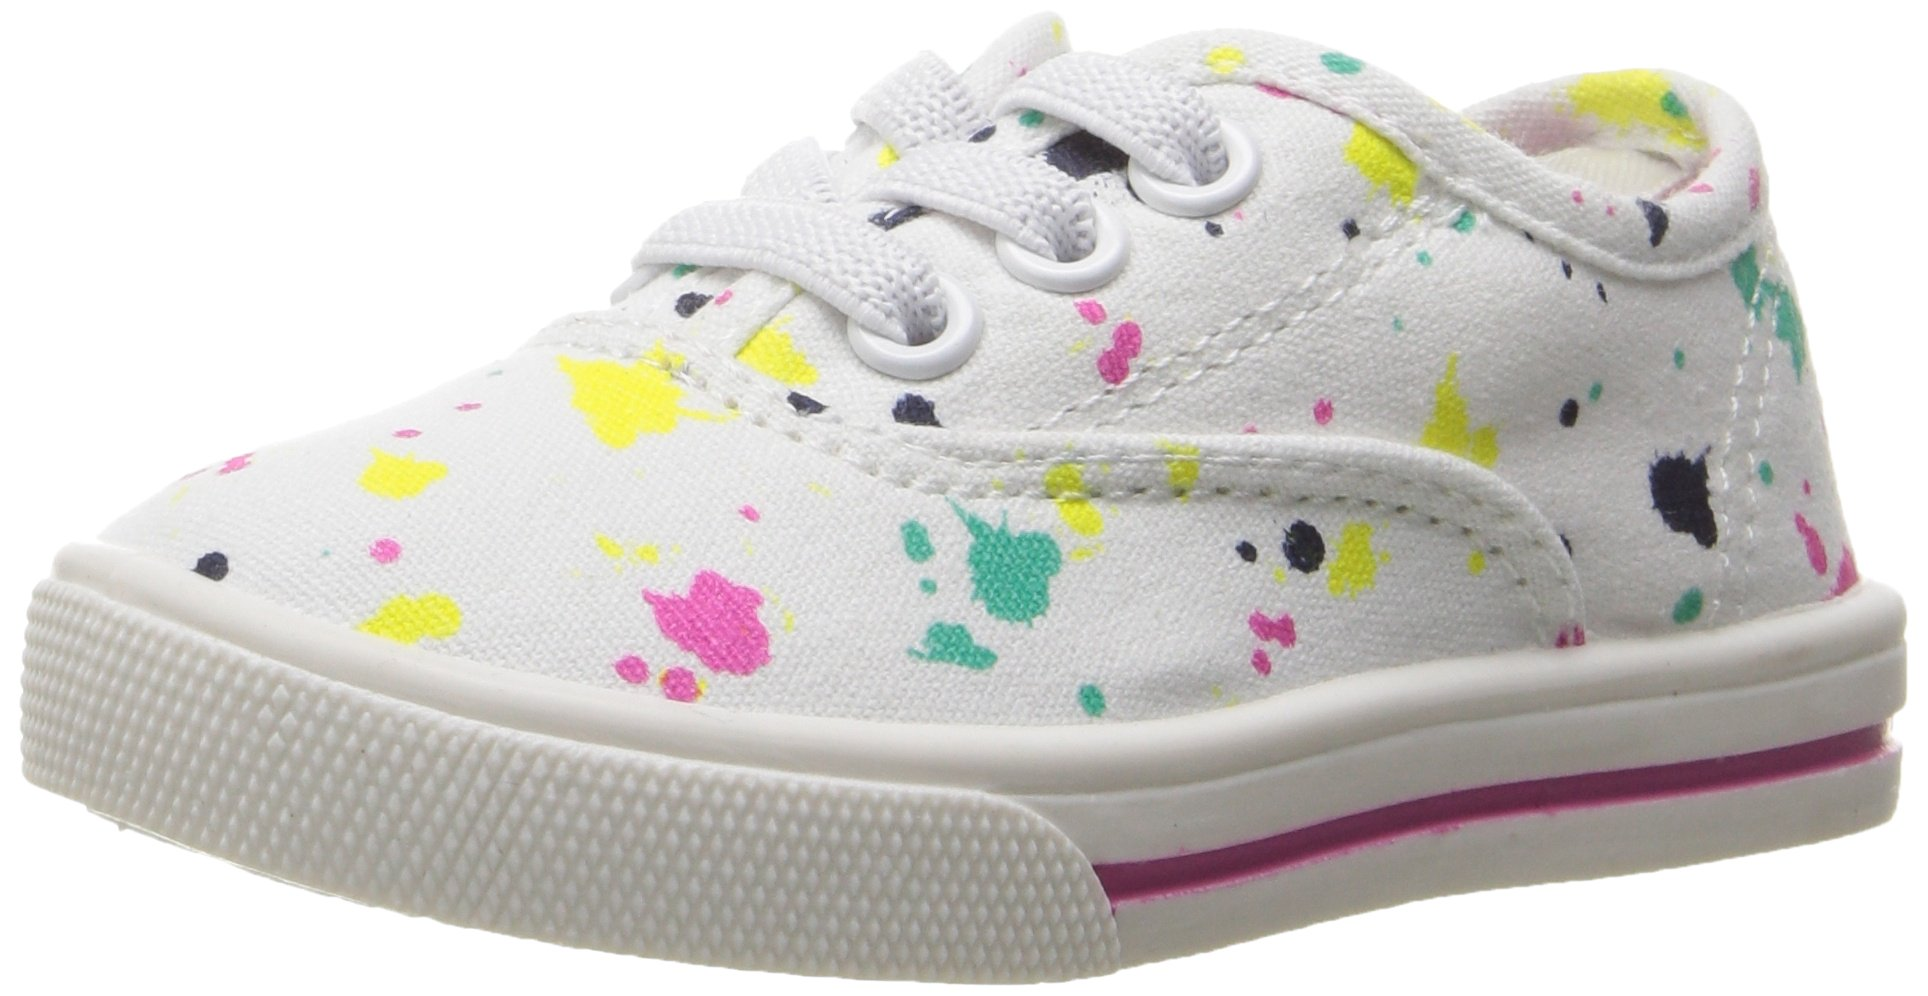 Carter's Piper Girl's Casual Sneaker, White/Print, 10 M US Toddler by Carter's (Image #1)